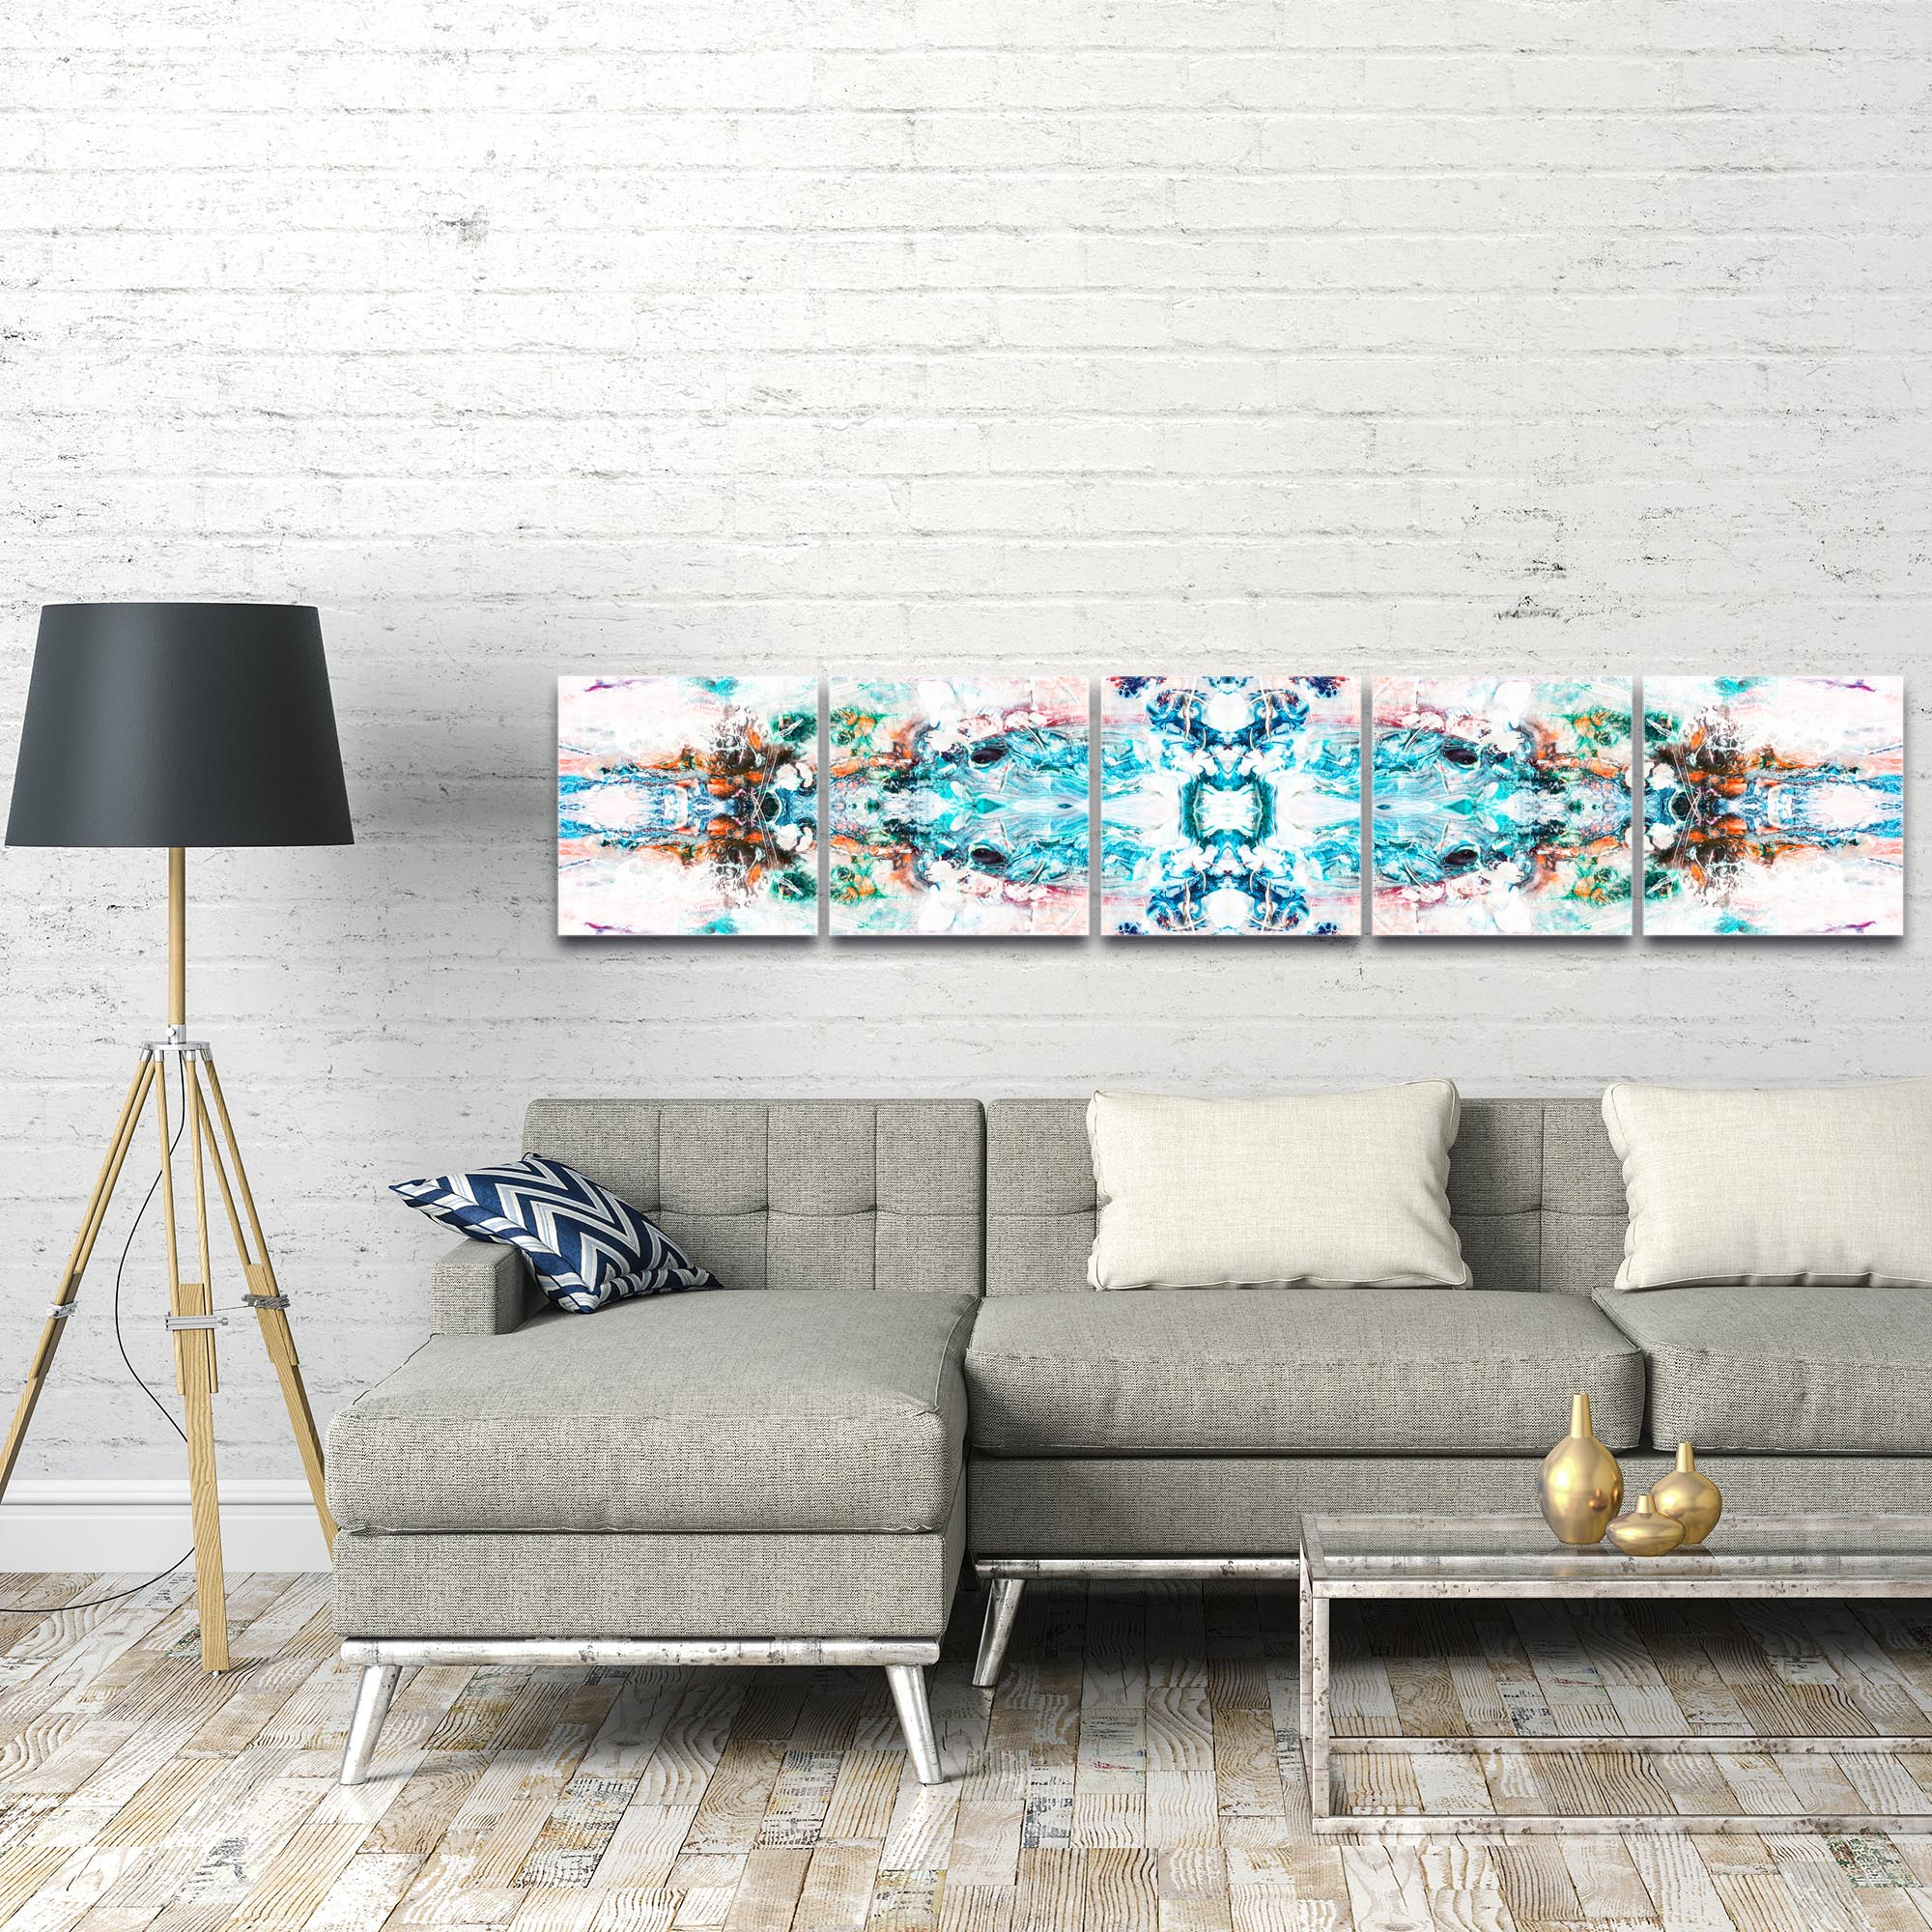 Abstract Wall Art 'Celestial' - Colorful Urban Decor on Metal or Plexiglass - Image 3